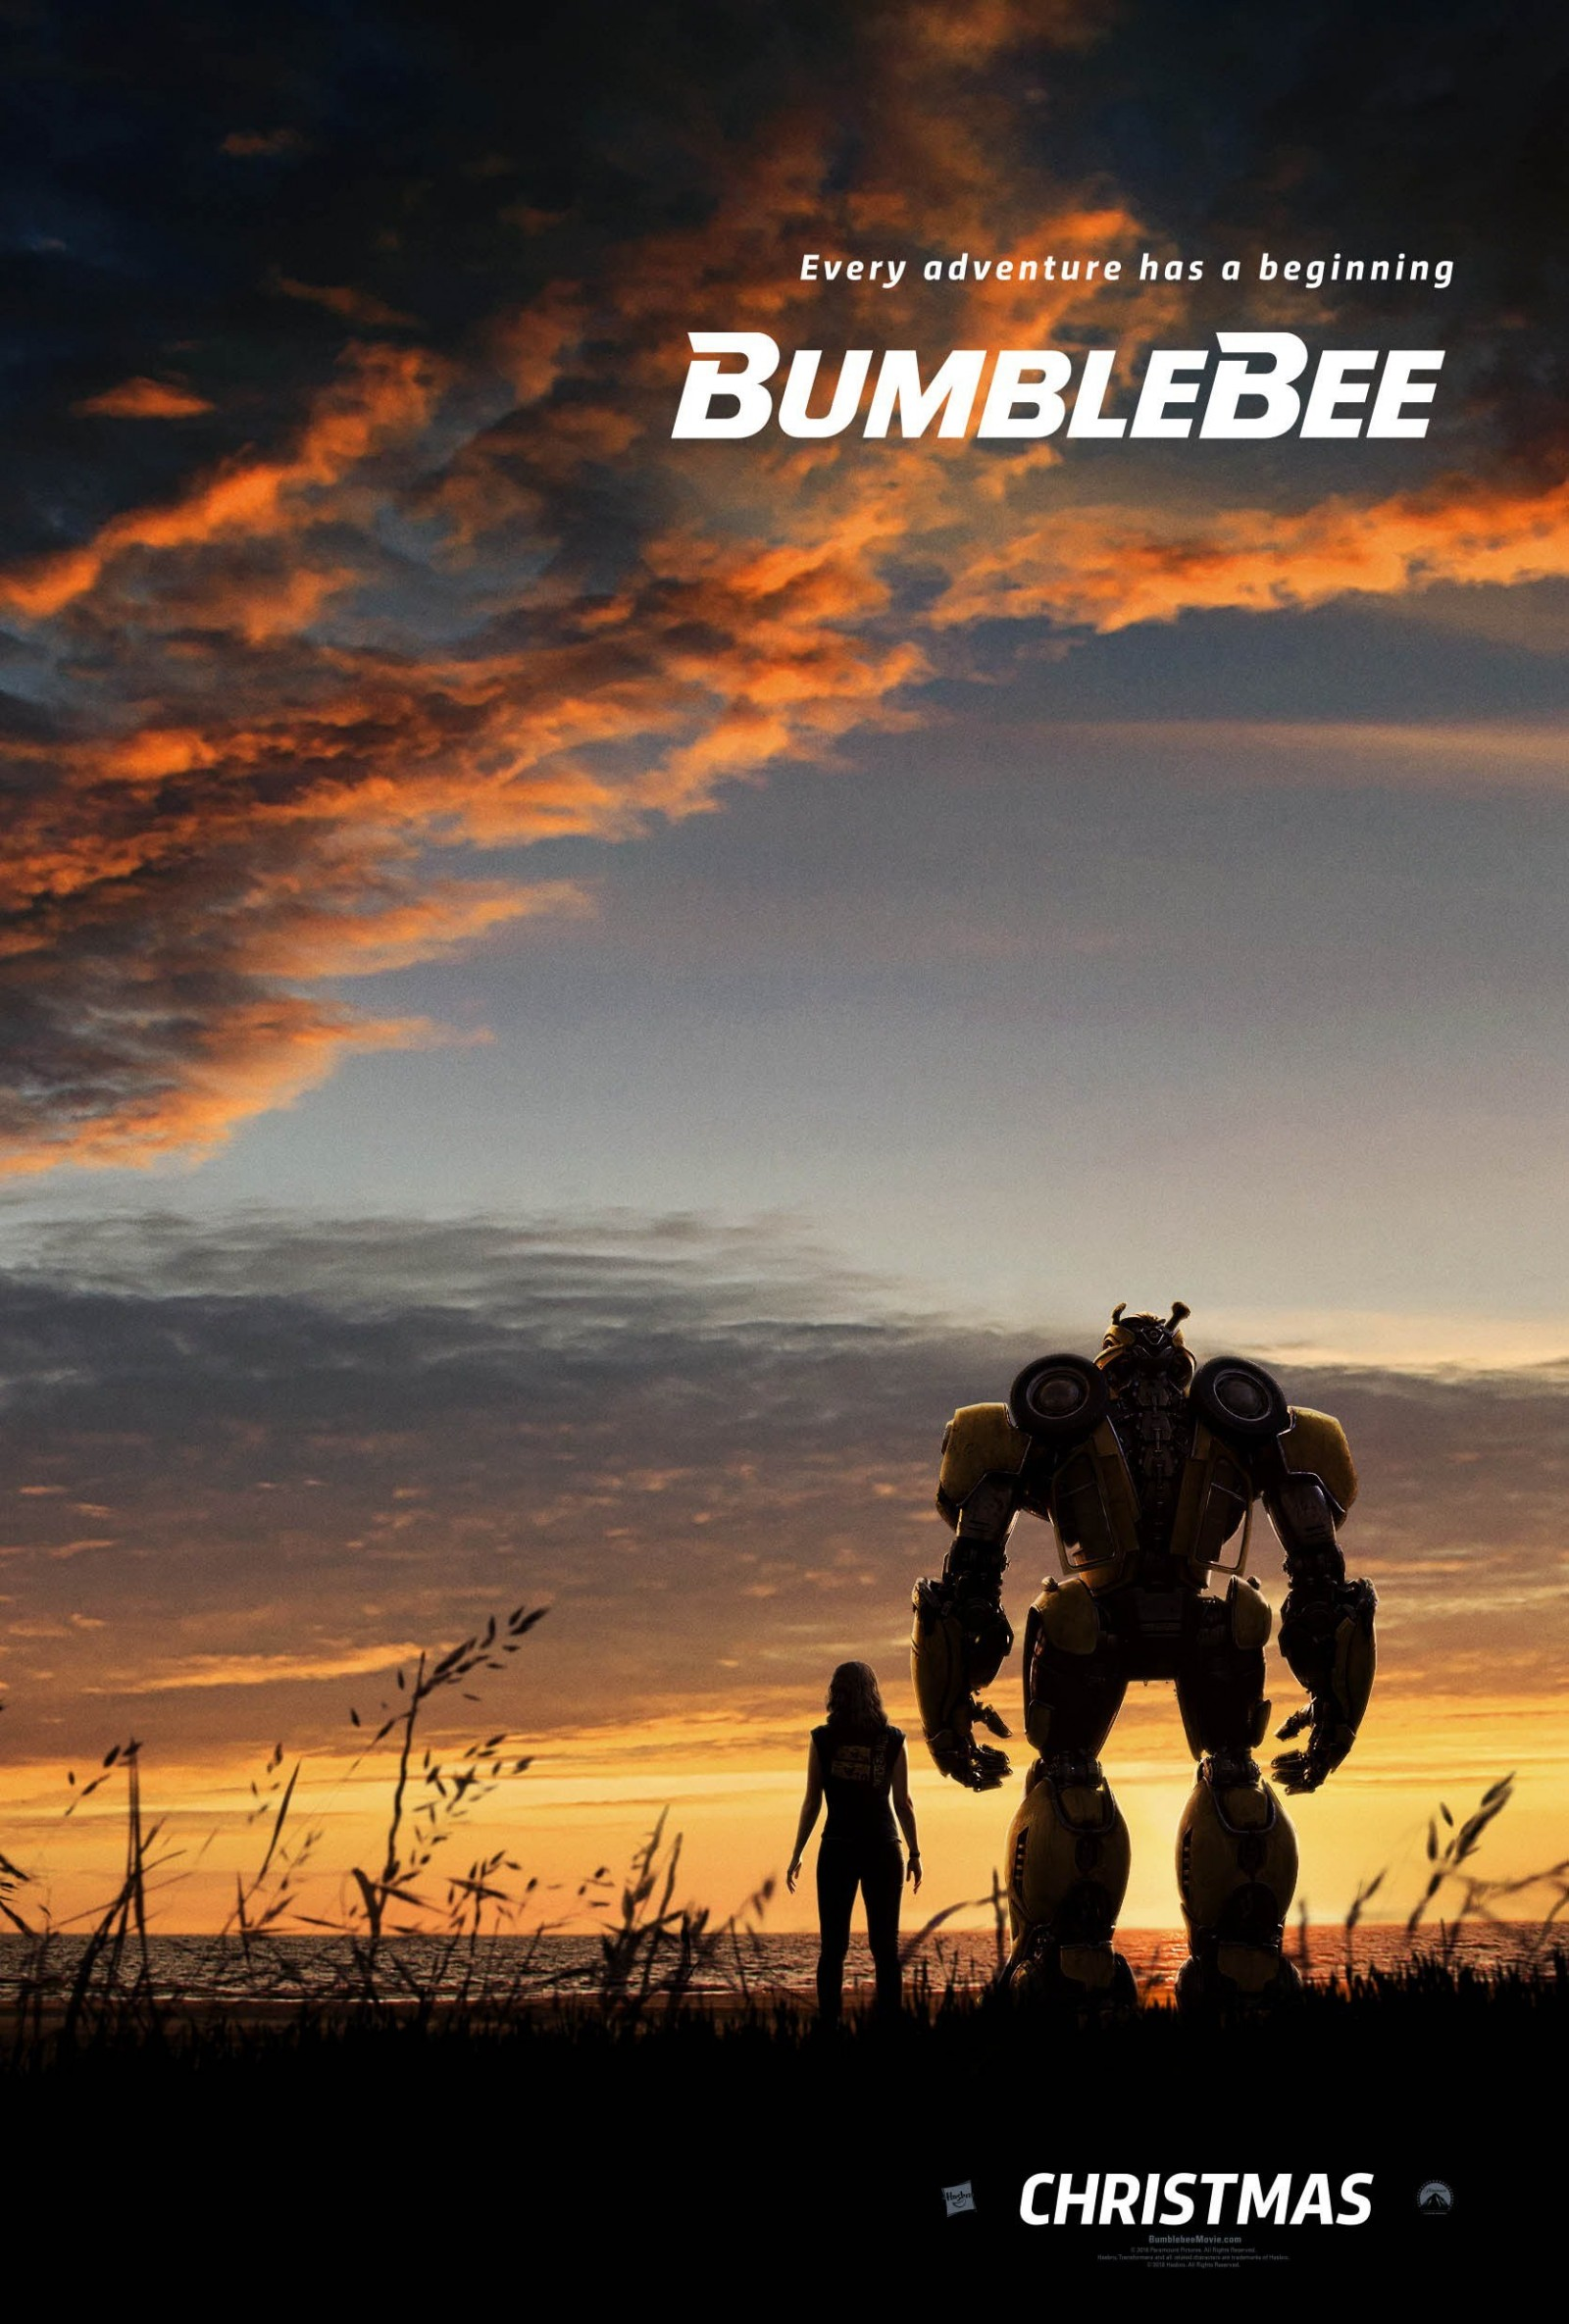 Transformers News: Full Poster Reveal for Transformers Bumblebee Movie #BumblebeeMovie